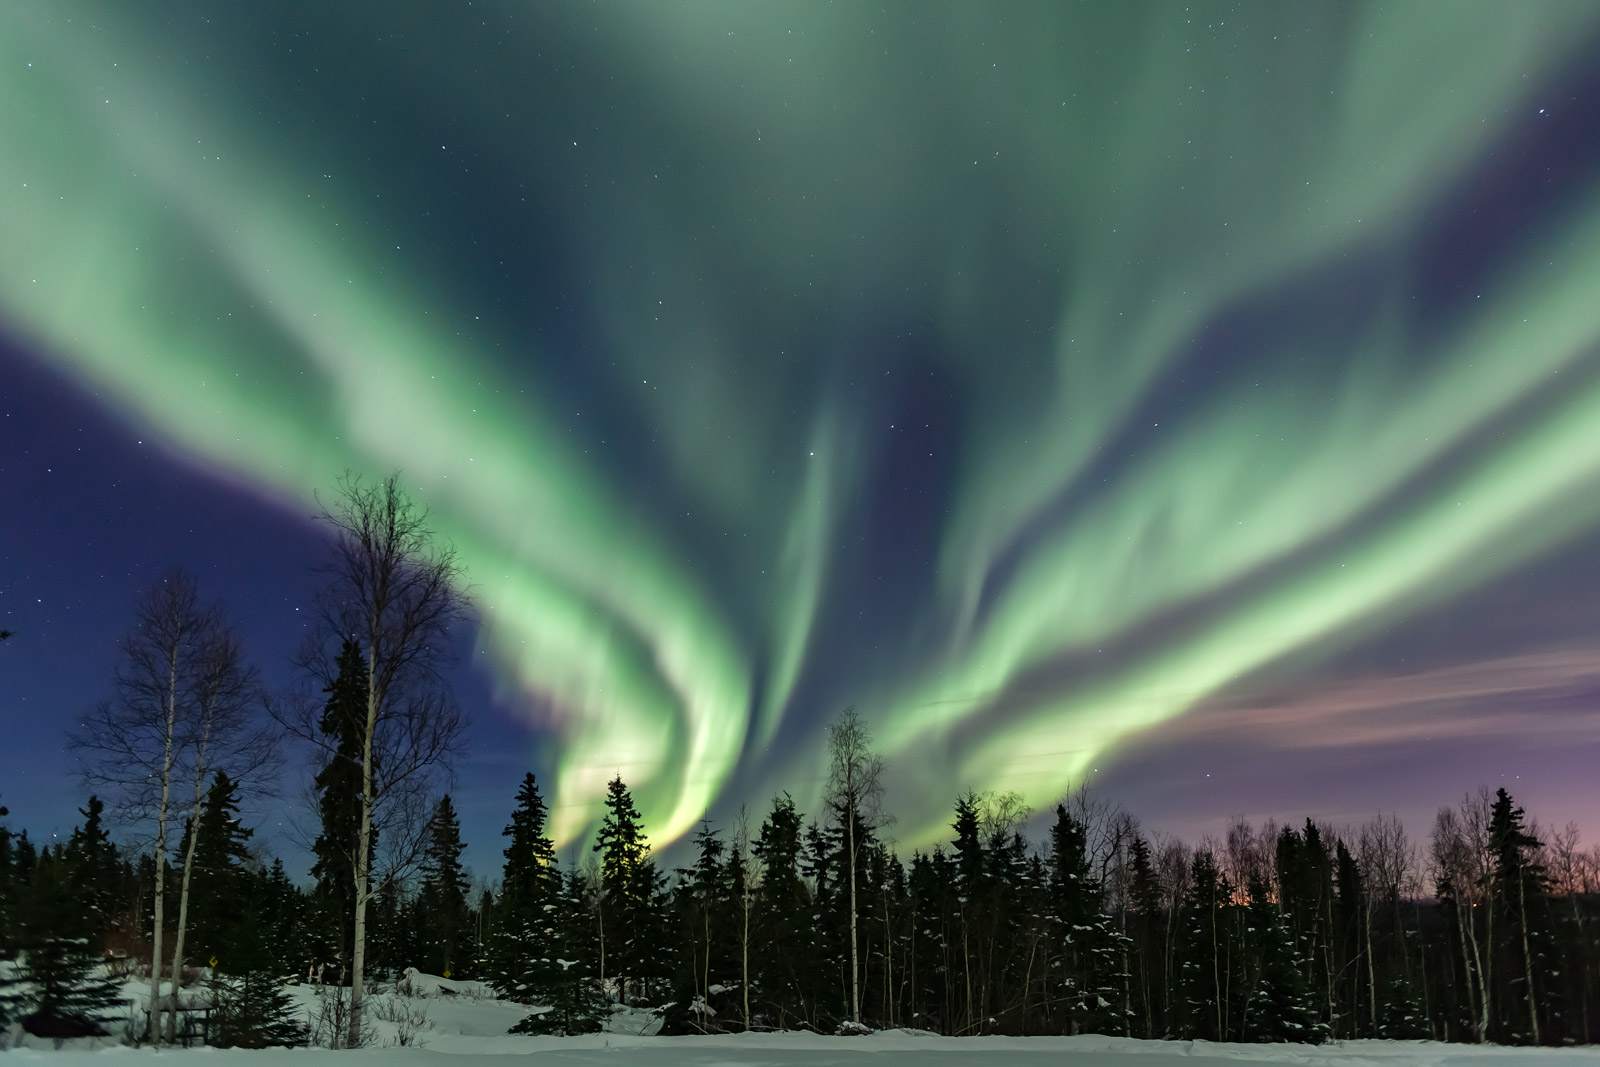 A Limited Edition, Fine Art photograph of a huge sprawling aurora looking like green fire in the sky over the trees in Fairbanks...